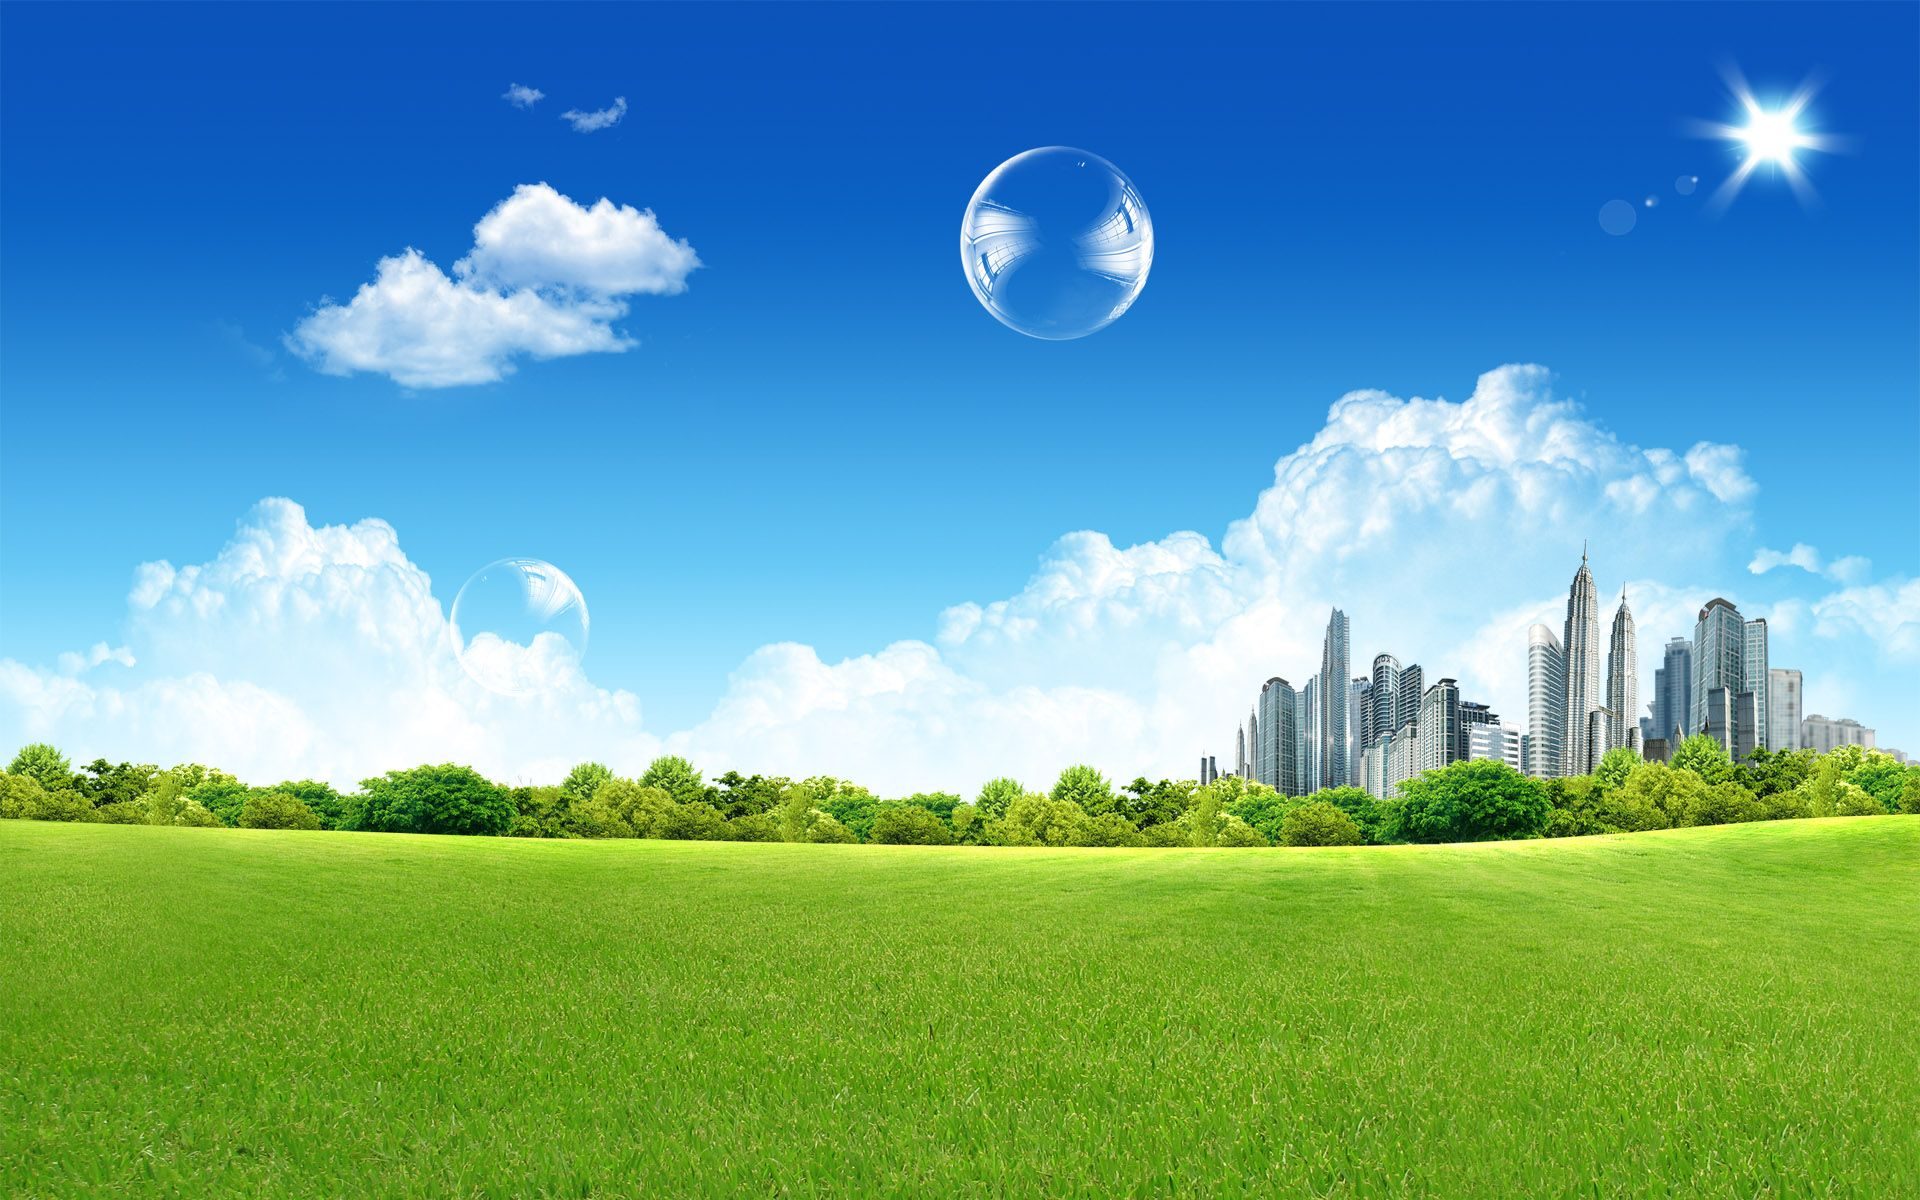 Fantasy City Background Buble Photo Photography Wallpaper City Wallpaper Summer Landscape